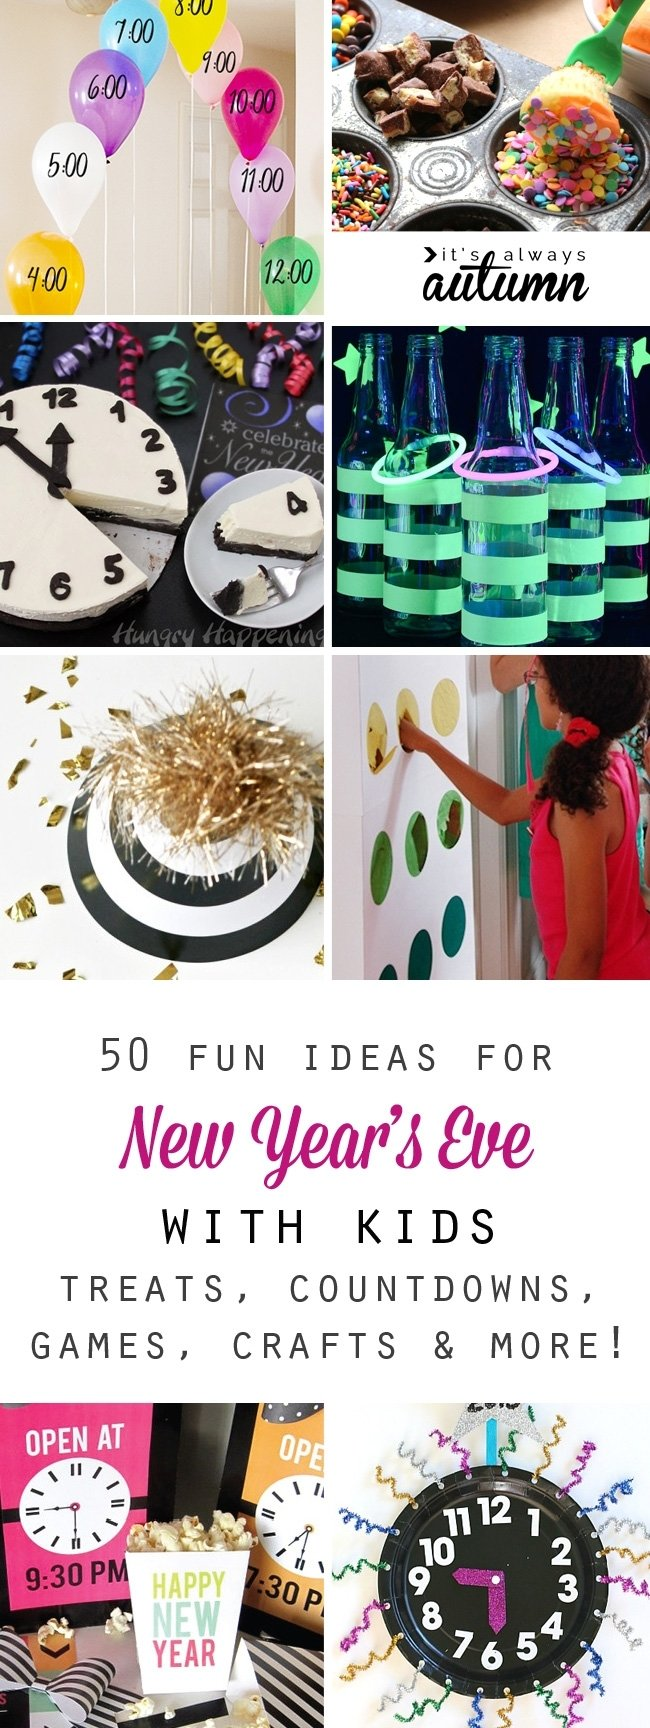 10 Wonderful New Years Eve Game Ideas 50 best ideas for celebrating new years eve with kids its always 6 2020